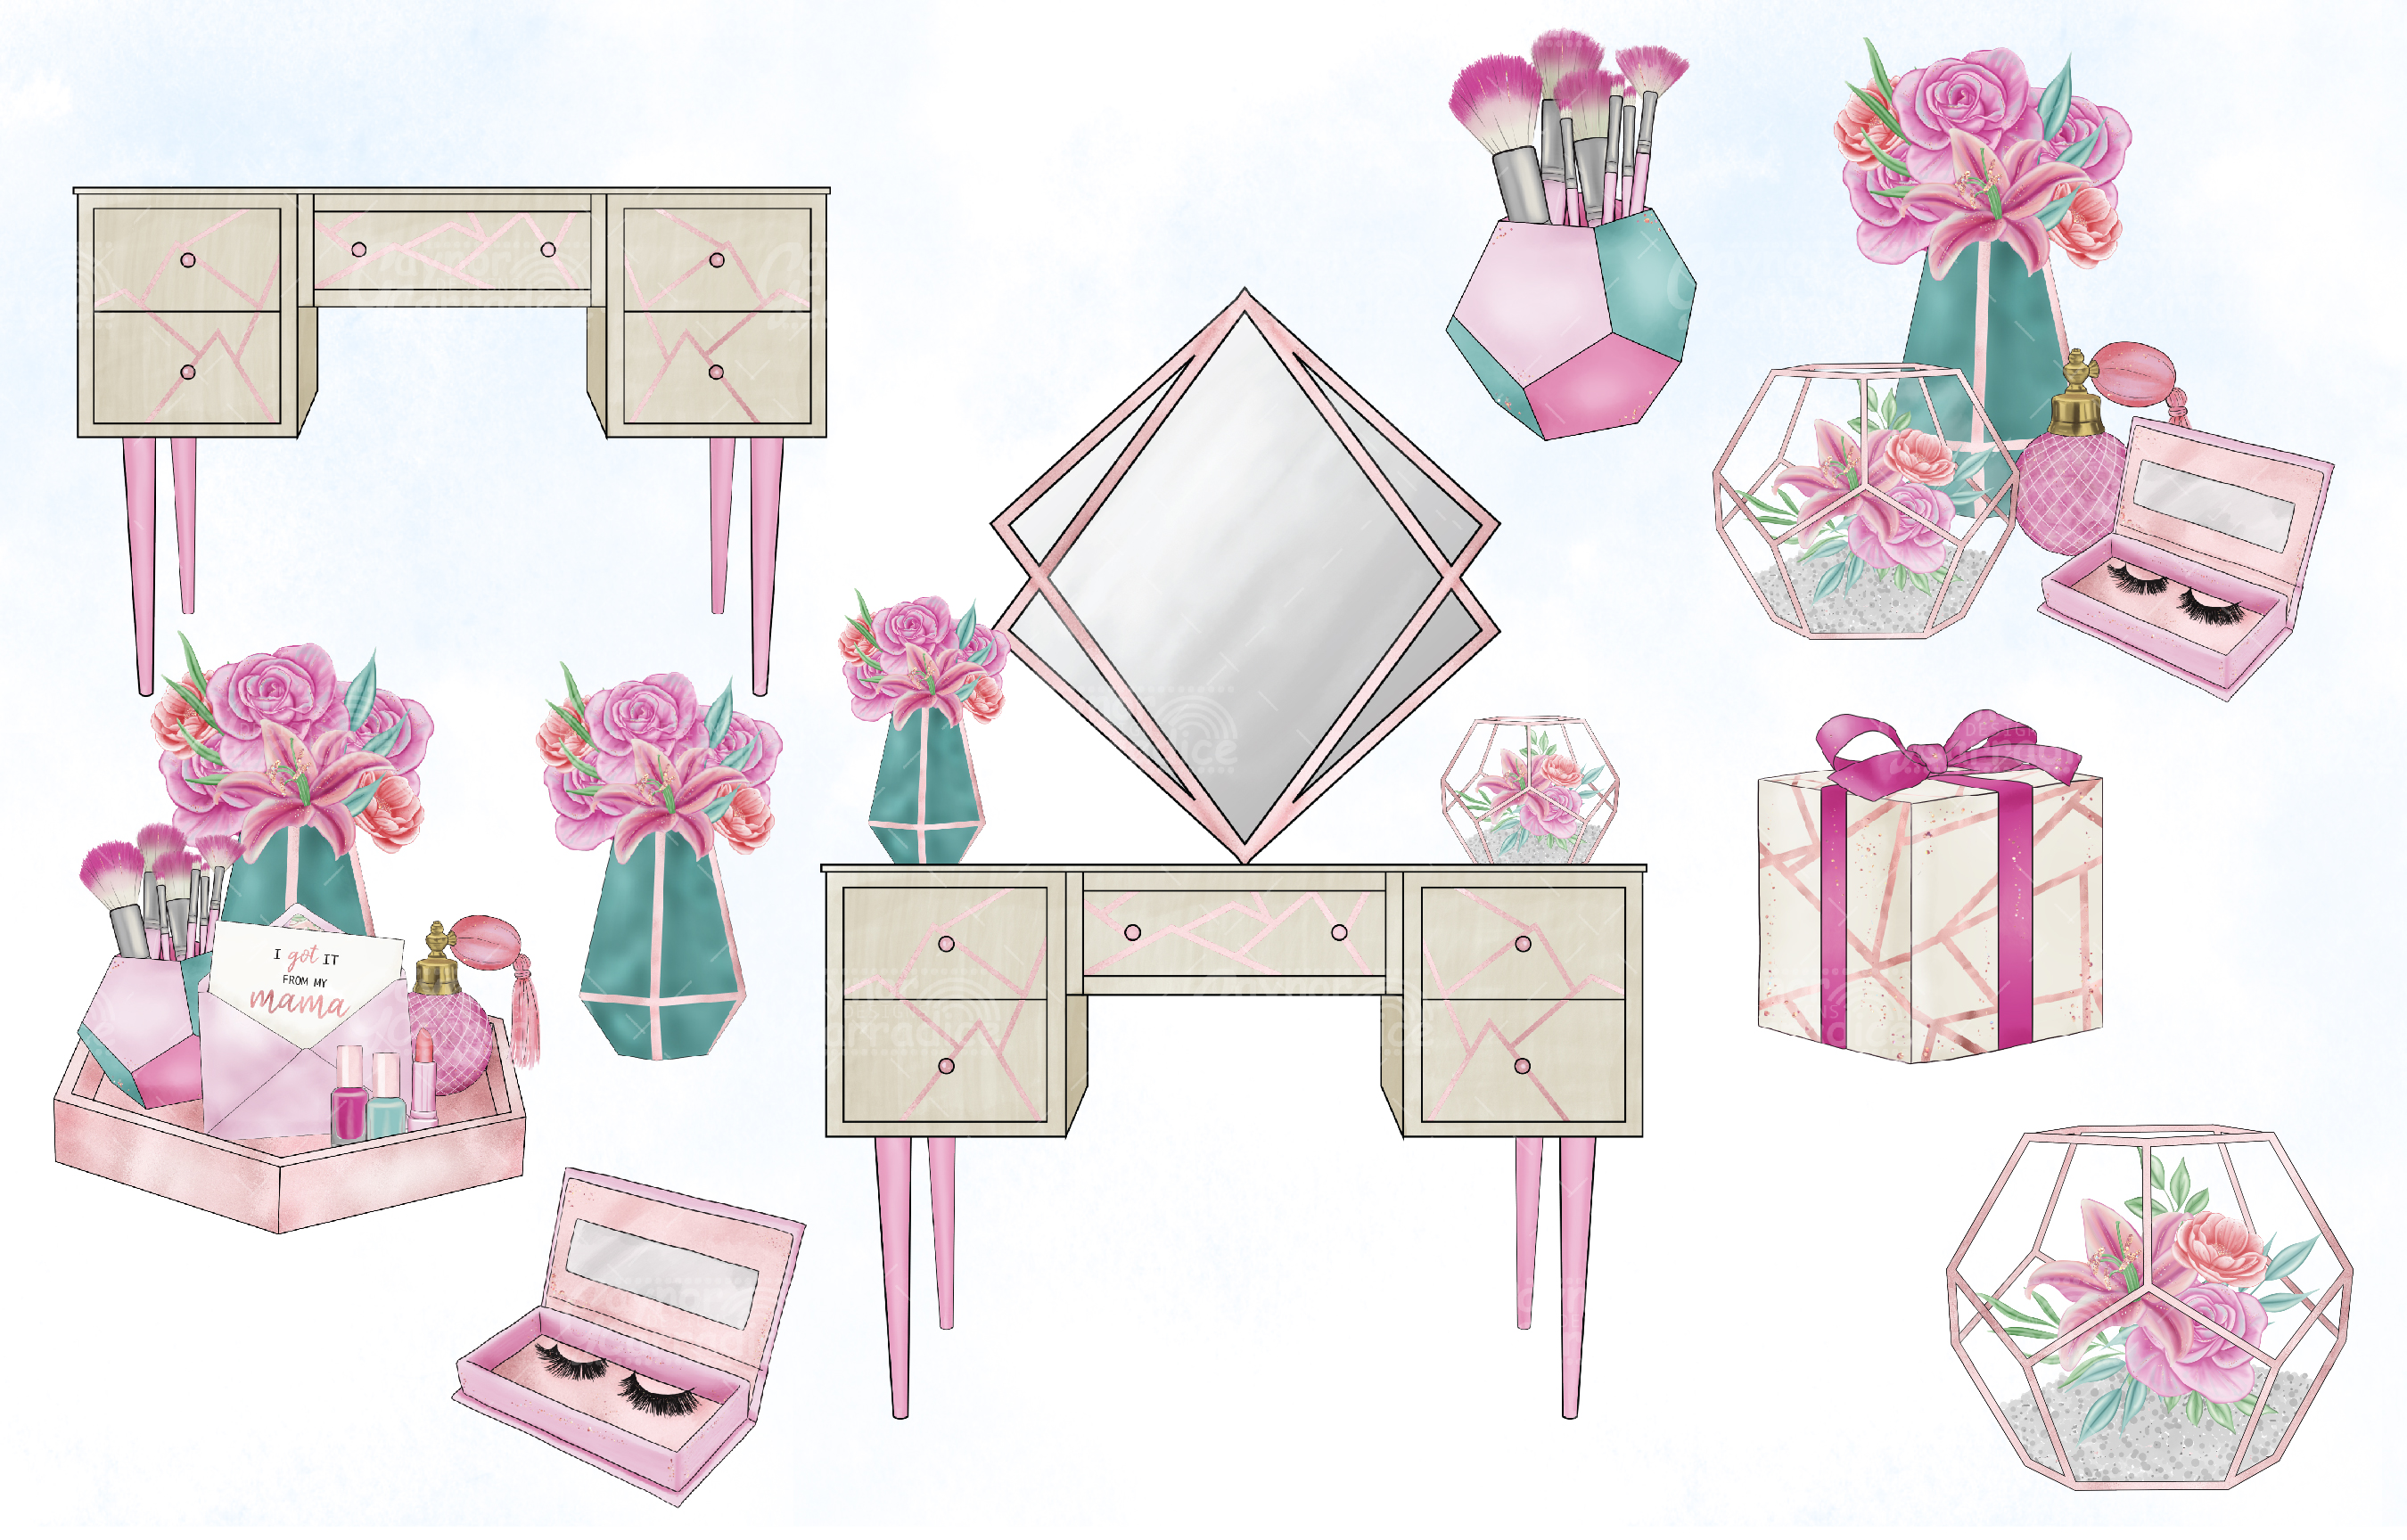 I got it from my mama - mothers day clipart collection example image 3